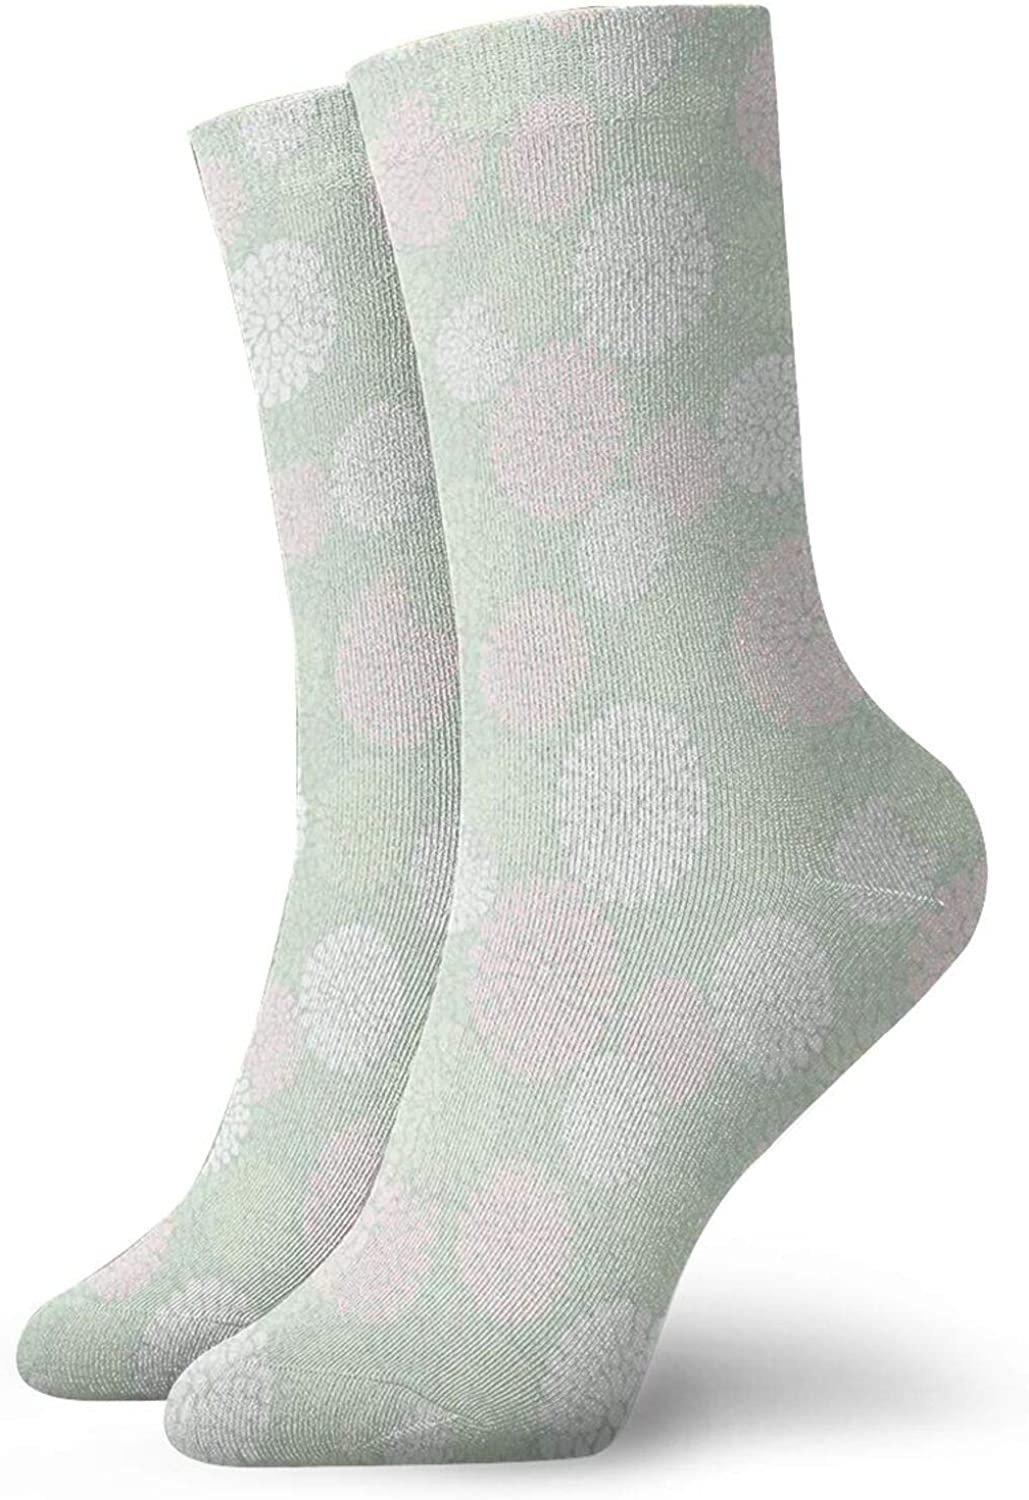 Compression High Socks-Dahlia Flowers In Pastel Tones Spring Blooms Theme Floral Pattern Best for Running,Athletic,Hiking,Travel,Flight